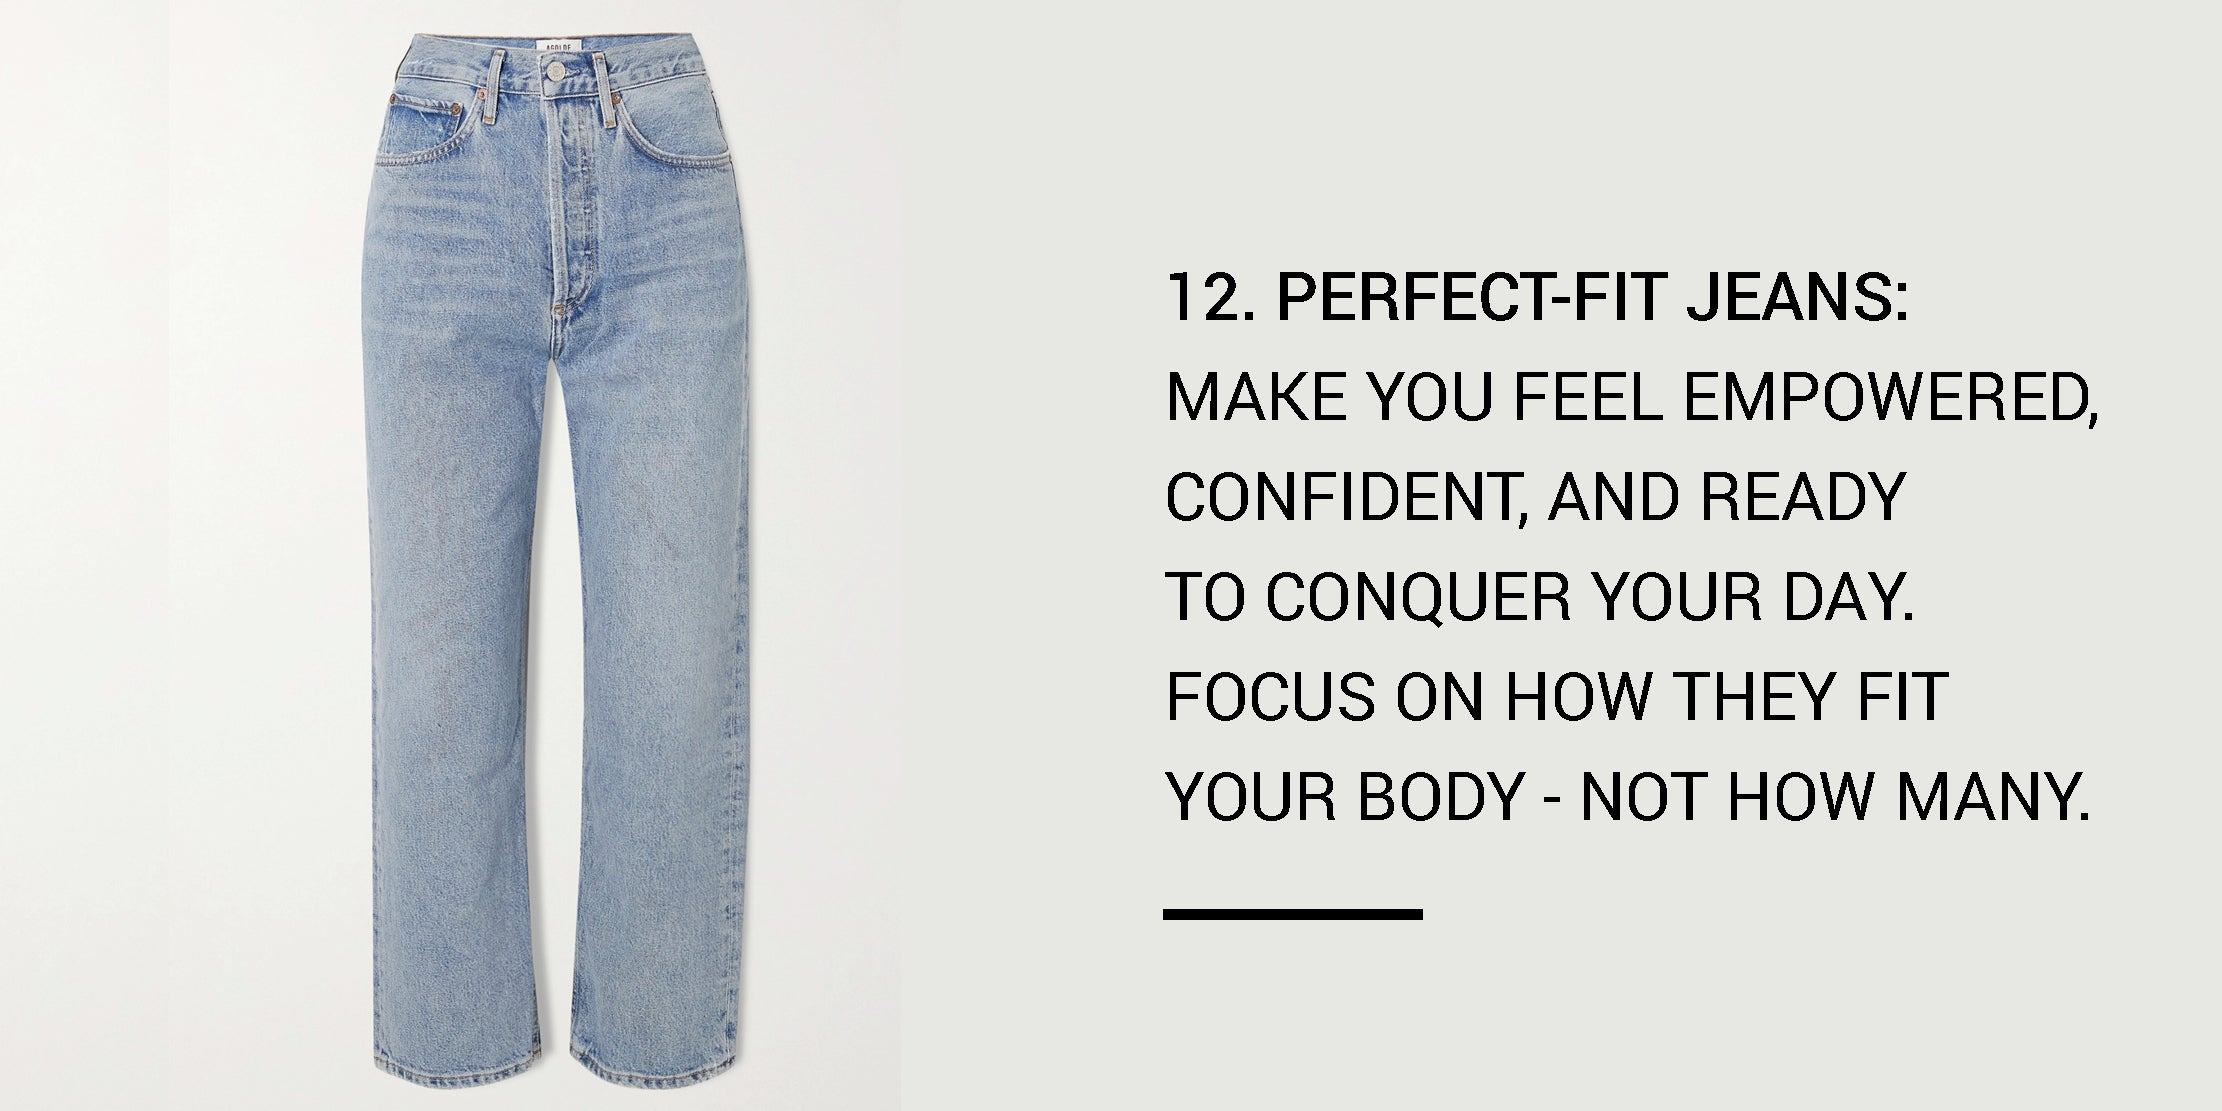 Year Round Capsule Wardrobe - 20 Essential Pieces - perfect-fit jeans -ownmuse